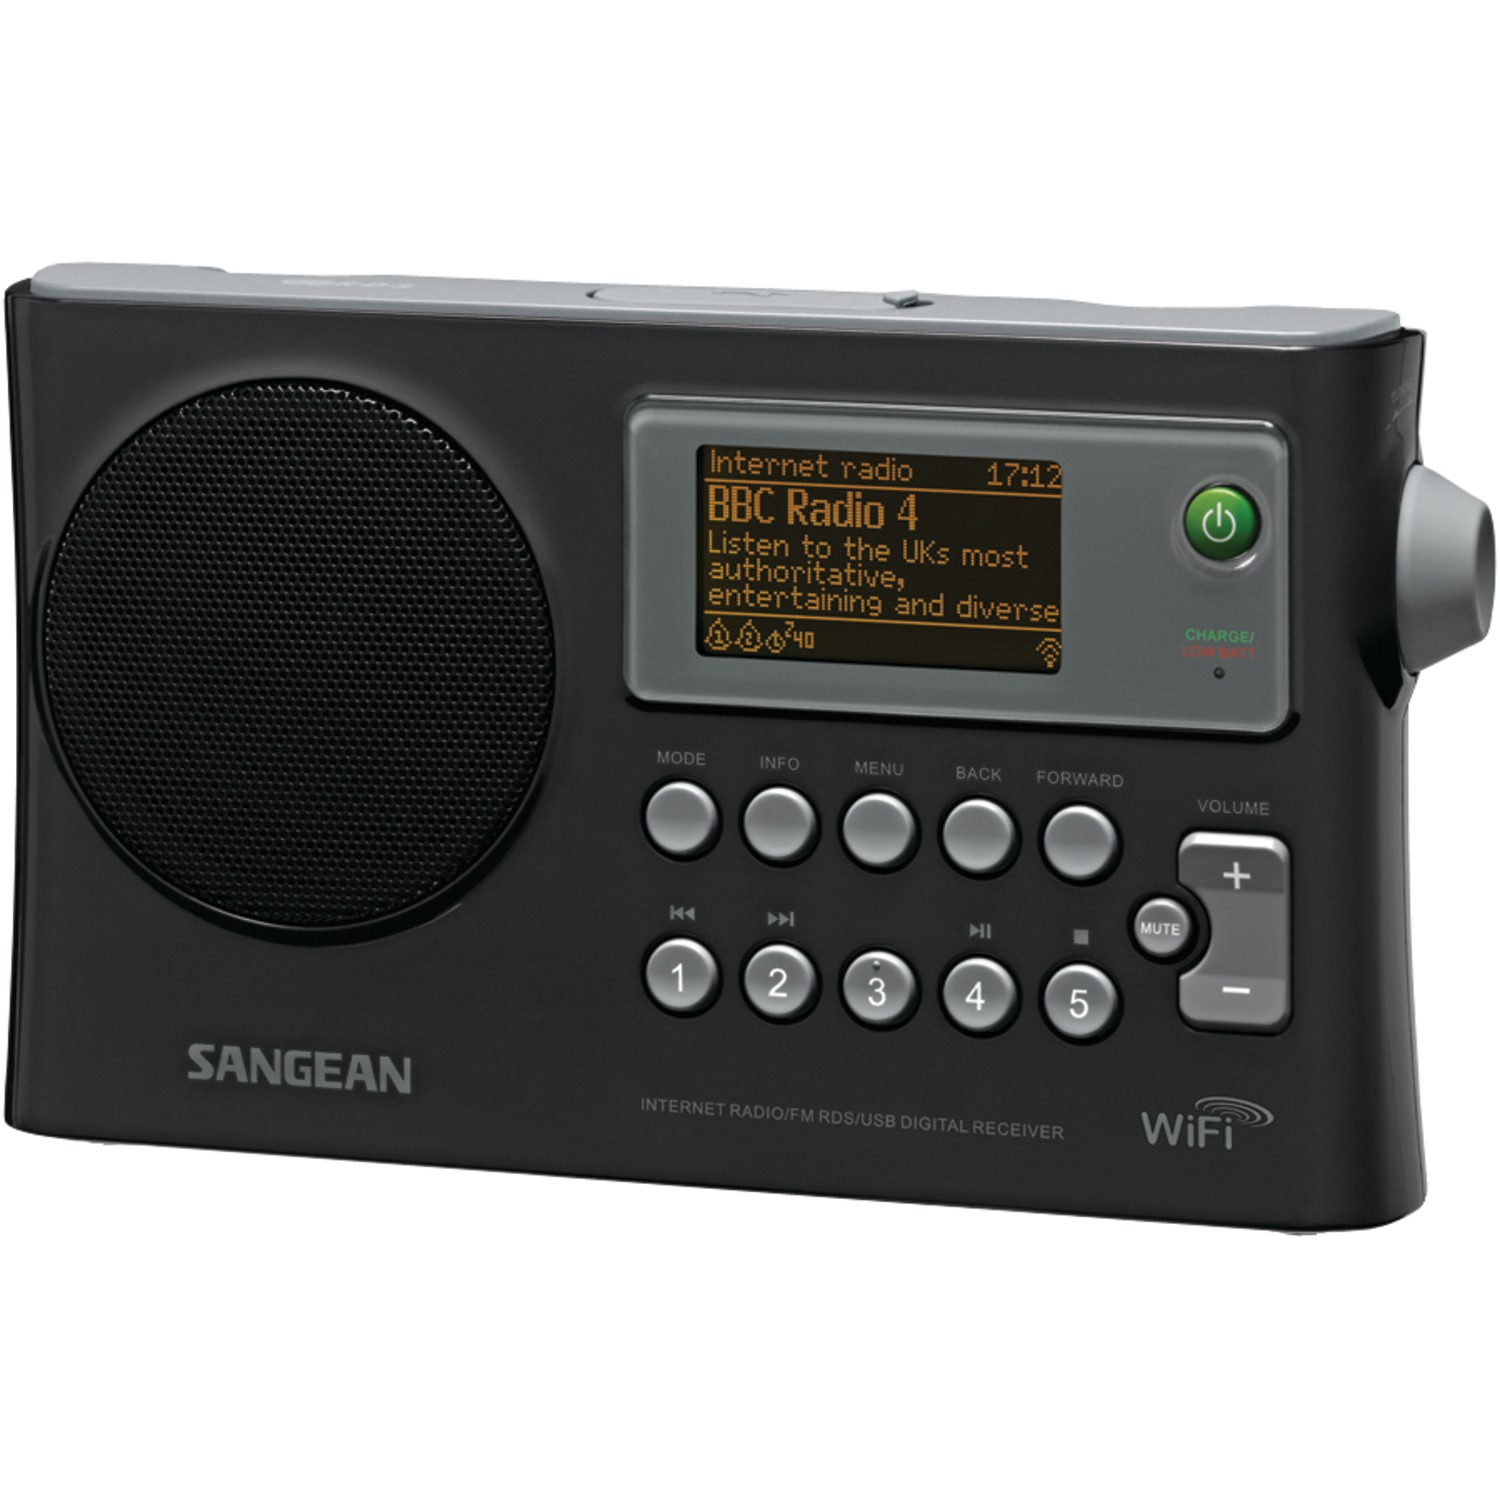 Sangean WFR-28 Wi-Fi FM-RDS Network Music Player USB Portable Radio by Sangean